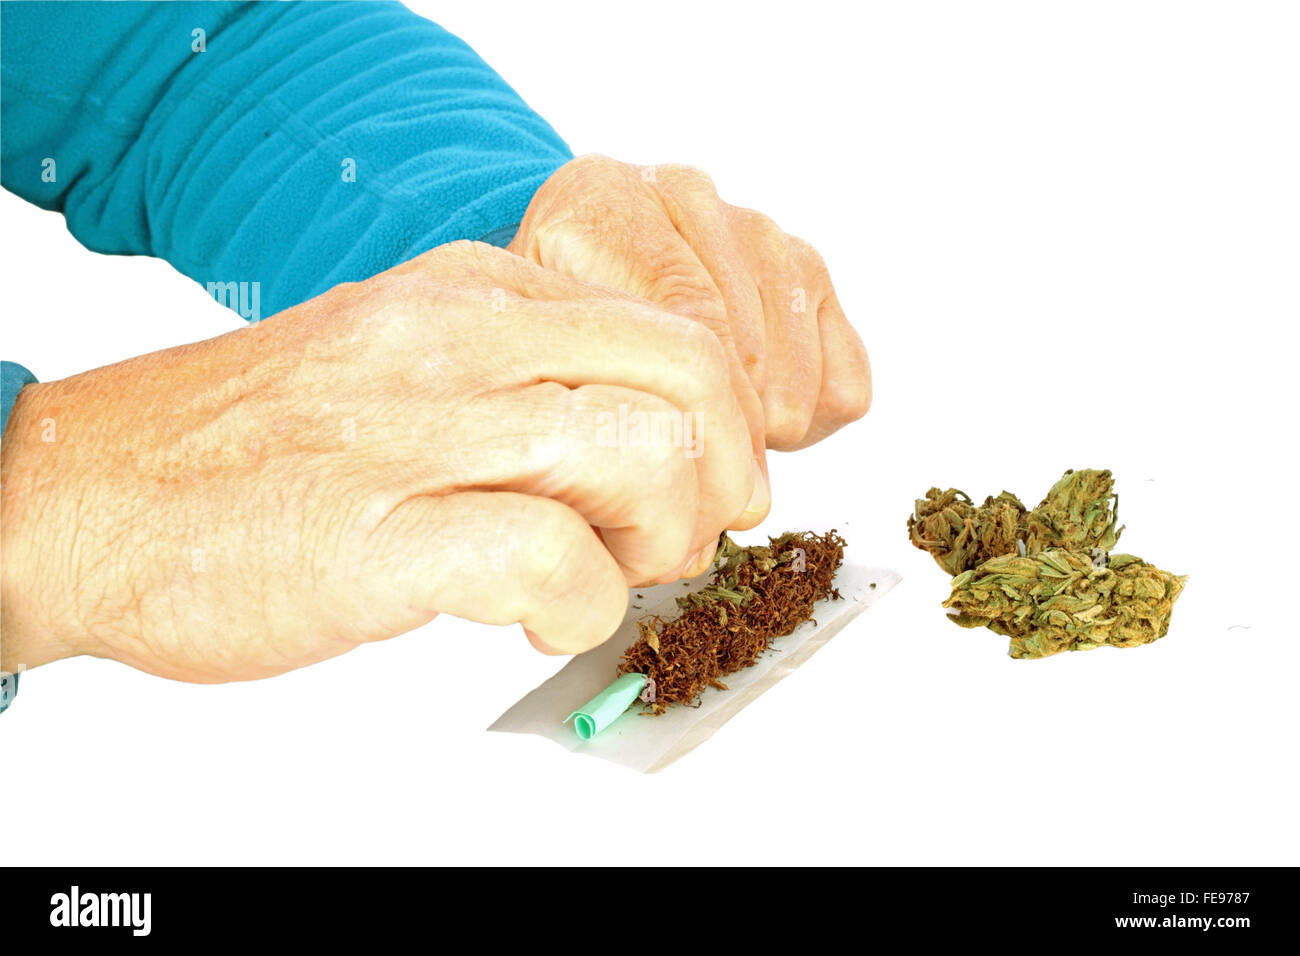 Man making a joint from marijuana - Stock Image